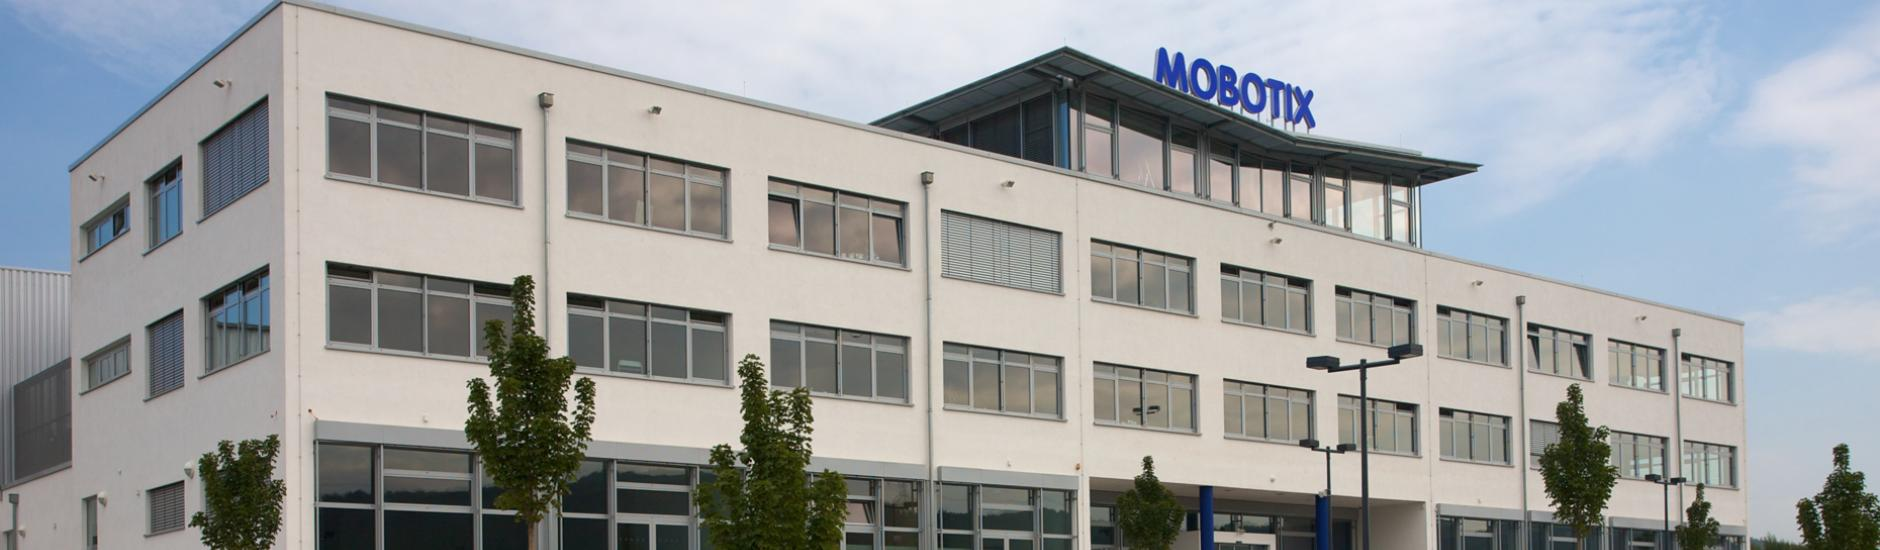 MOBOTIX Headquarters